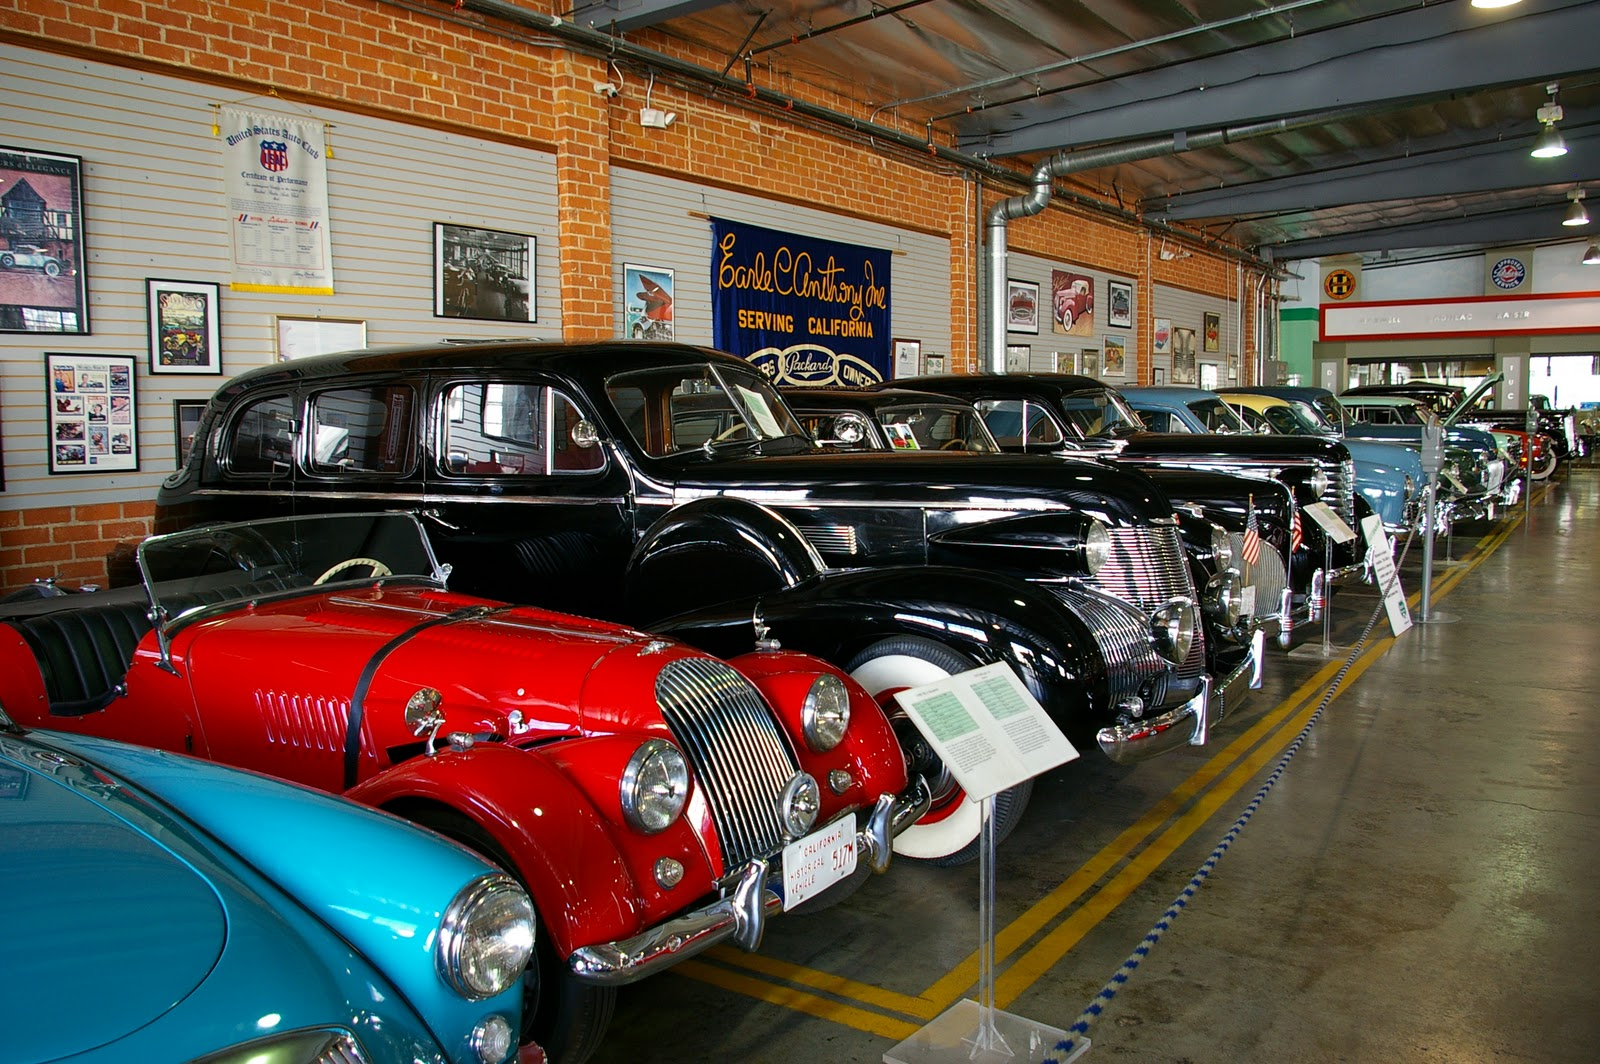 Posted by Vaughan Ling at 12:08 AM No comments: